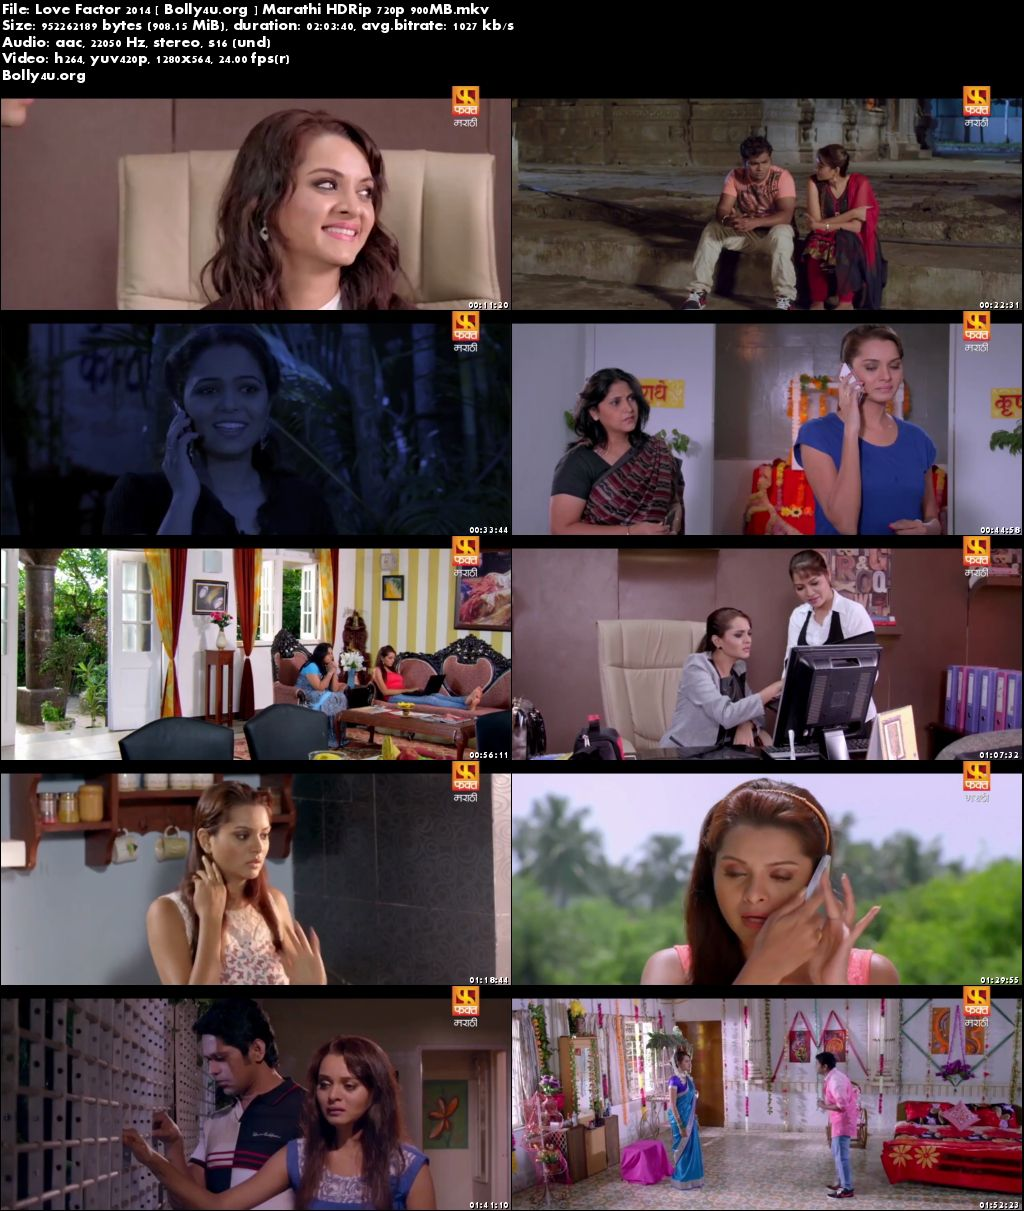 Love Factor 2014 HDRip 900Mb Marathi Movie 720p Download